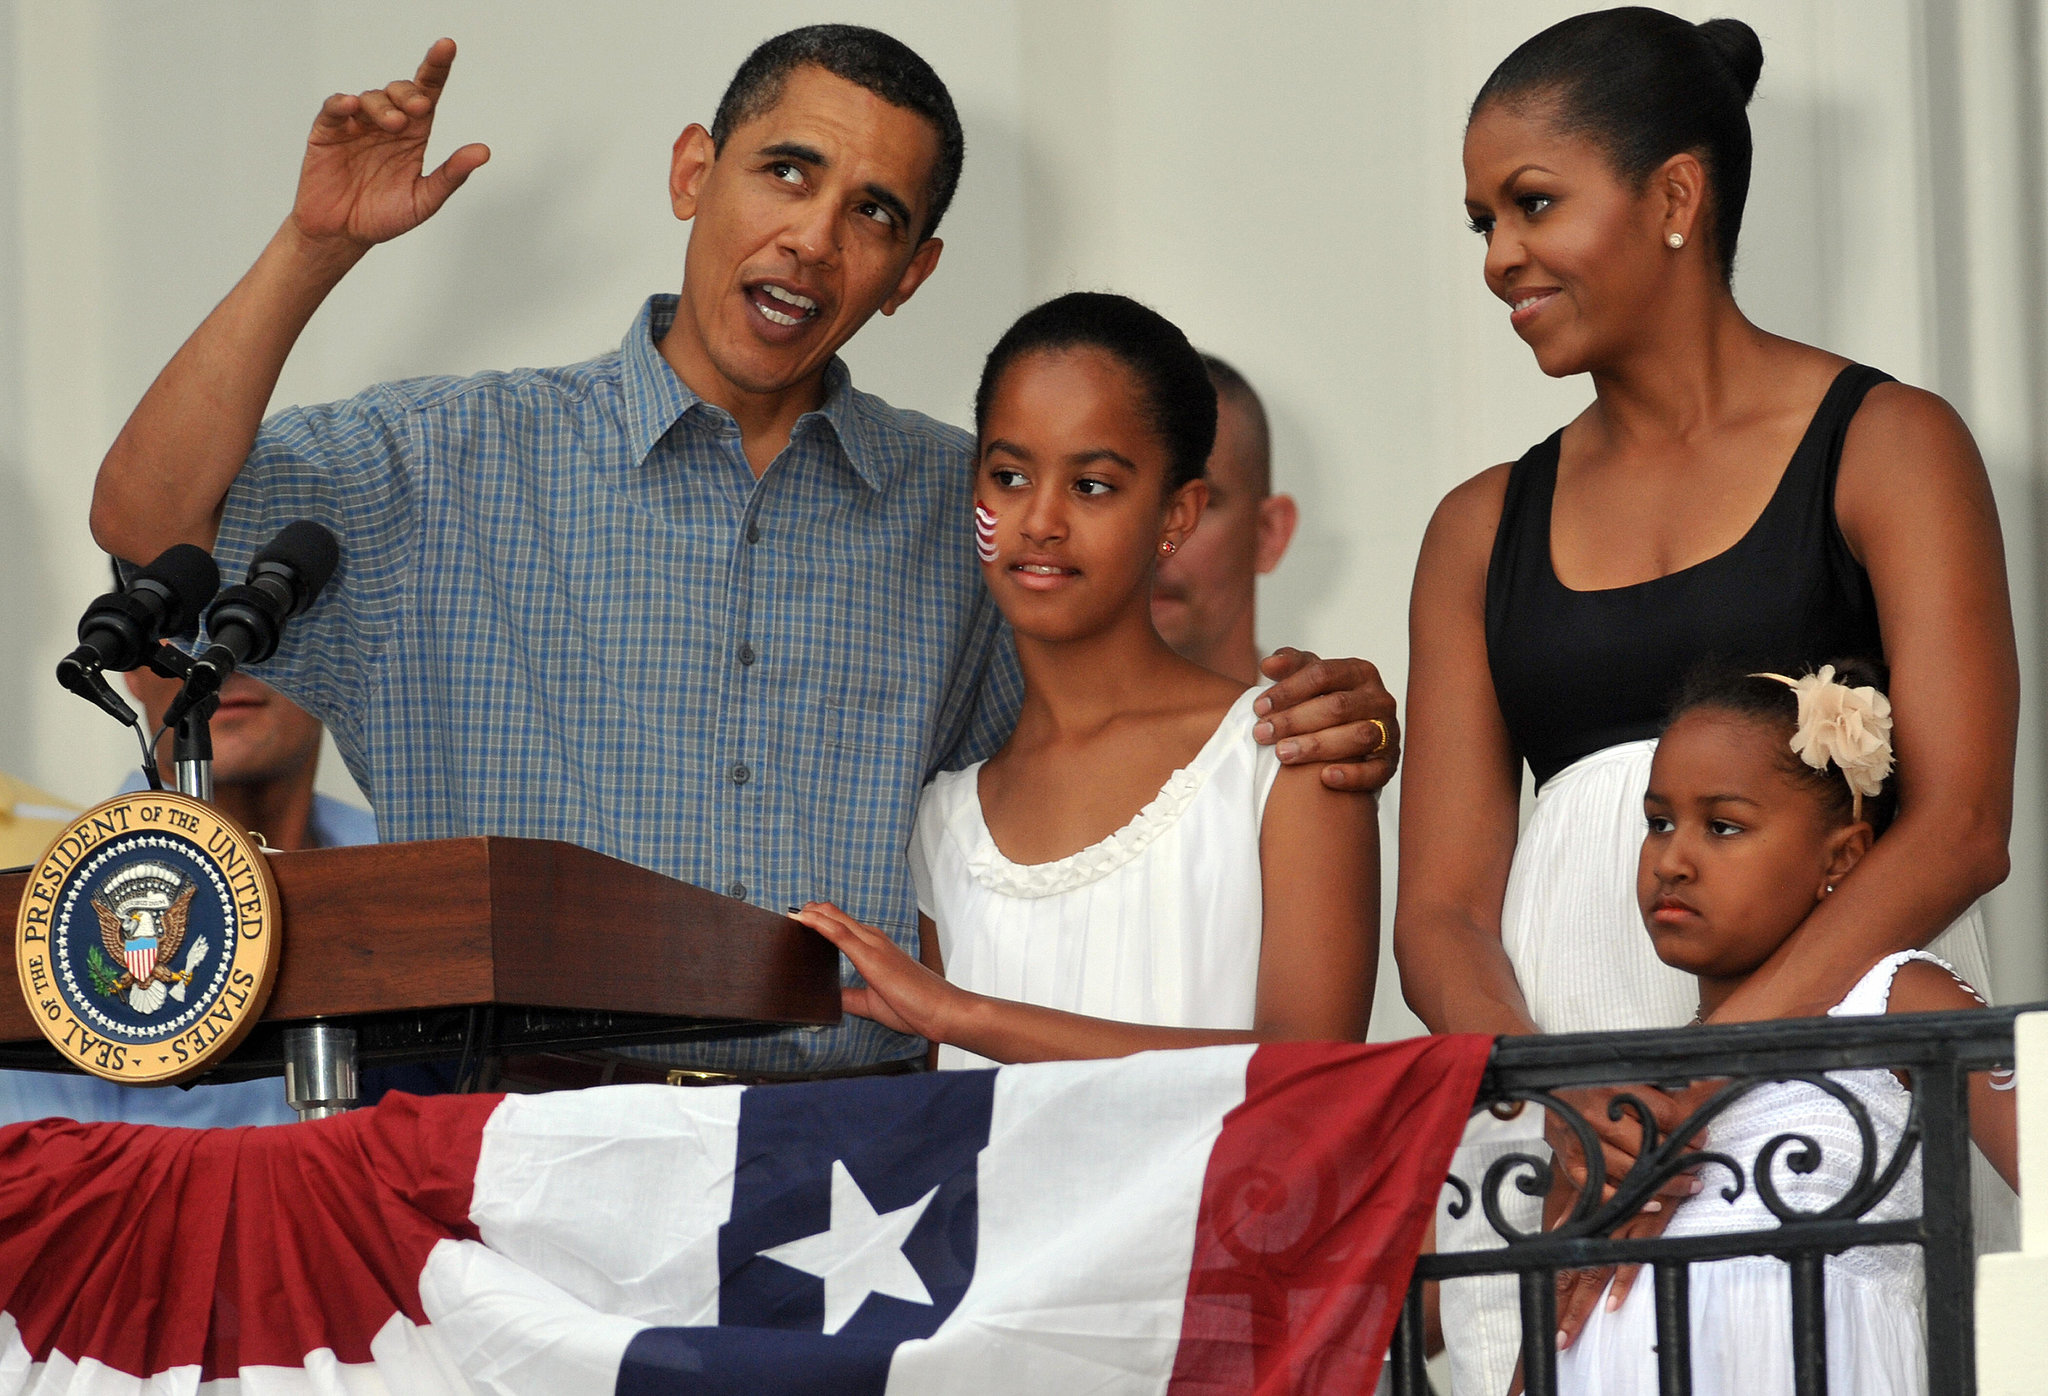 The Obamas kept close during the 2009 event.